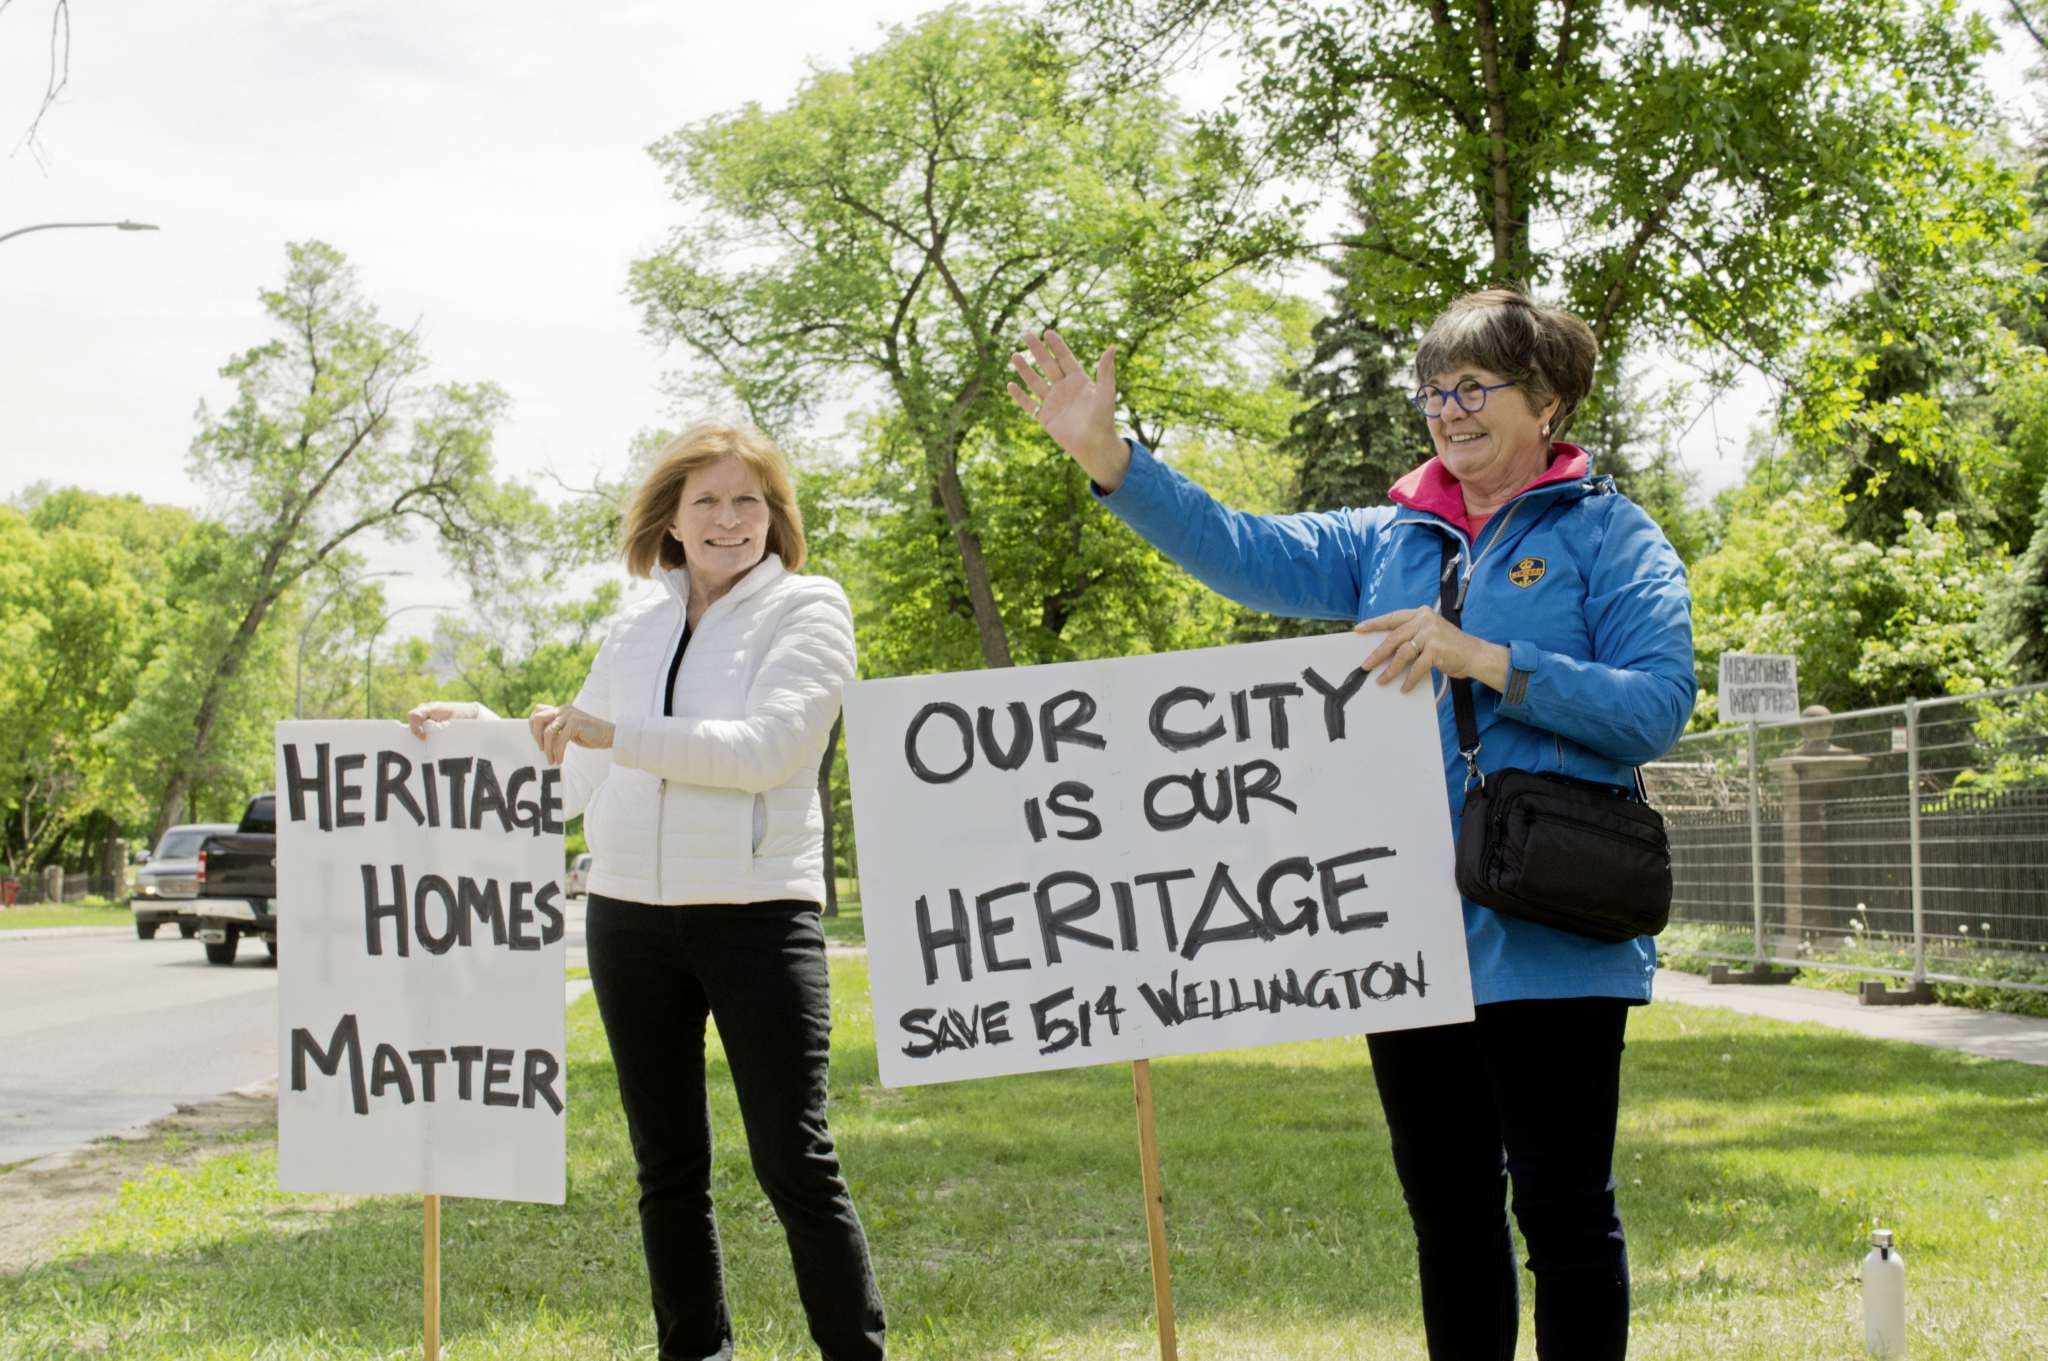 Mary Hall and Christine Skene are part of the Save 514 Wellington committee and pledged to picket the property until demolition machinery was removed from the lot. Skene (right) is a member of the neighbourhood conservation committee working with the City to get a heritage conservation district designation for Crescentwood.